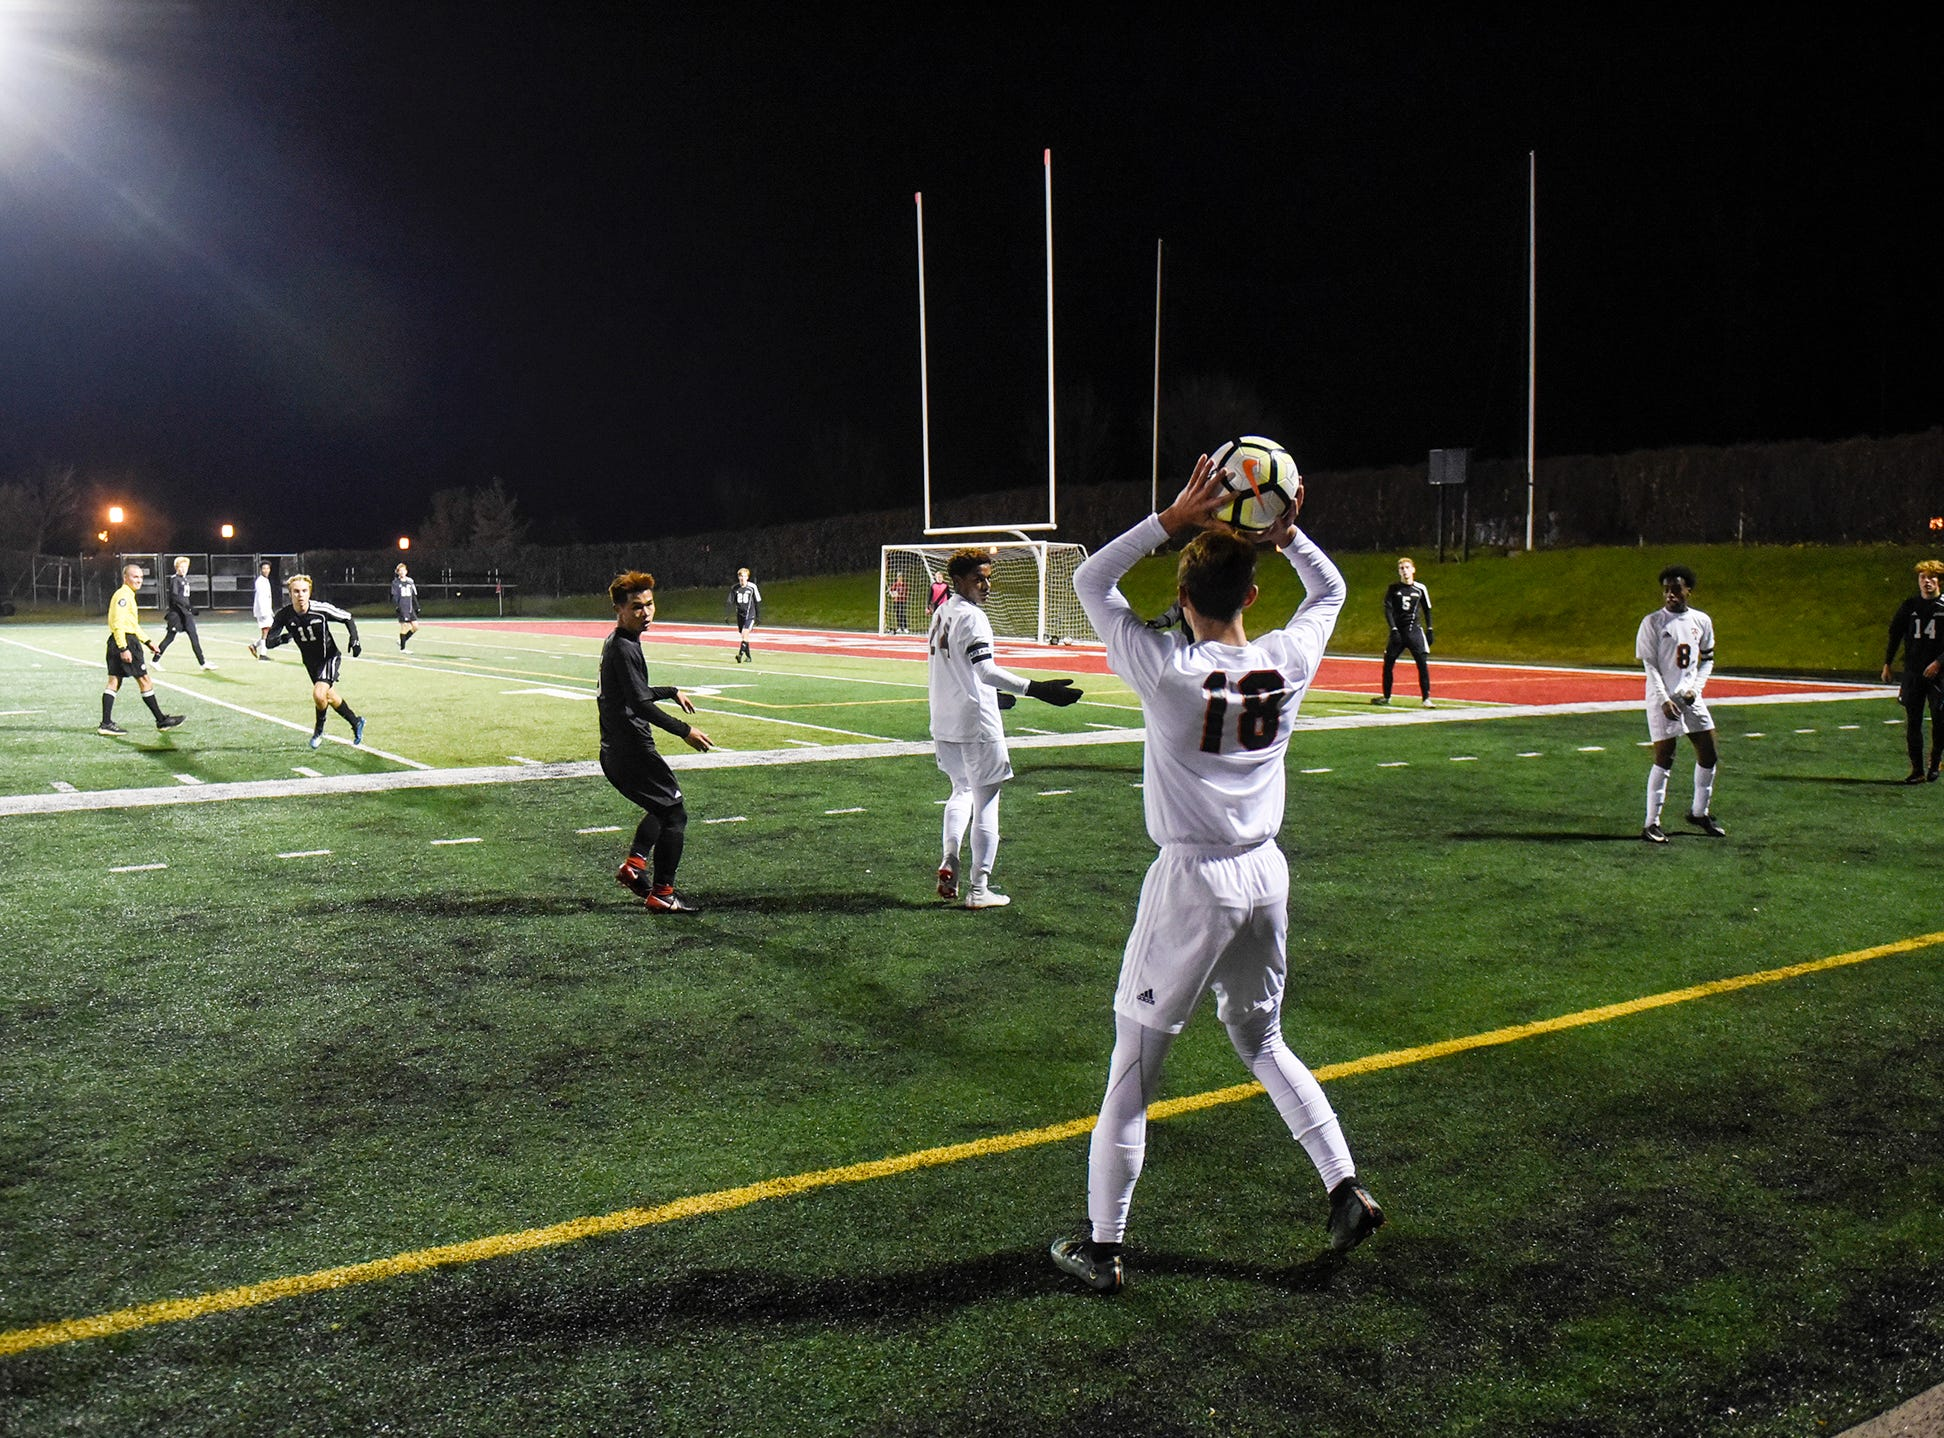 Tech gets ready to bring the ball inbounds during the Thursday, Oct. 25, Class 2A state quarterfinal game at Husky Stadium in St. Cloud.